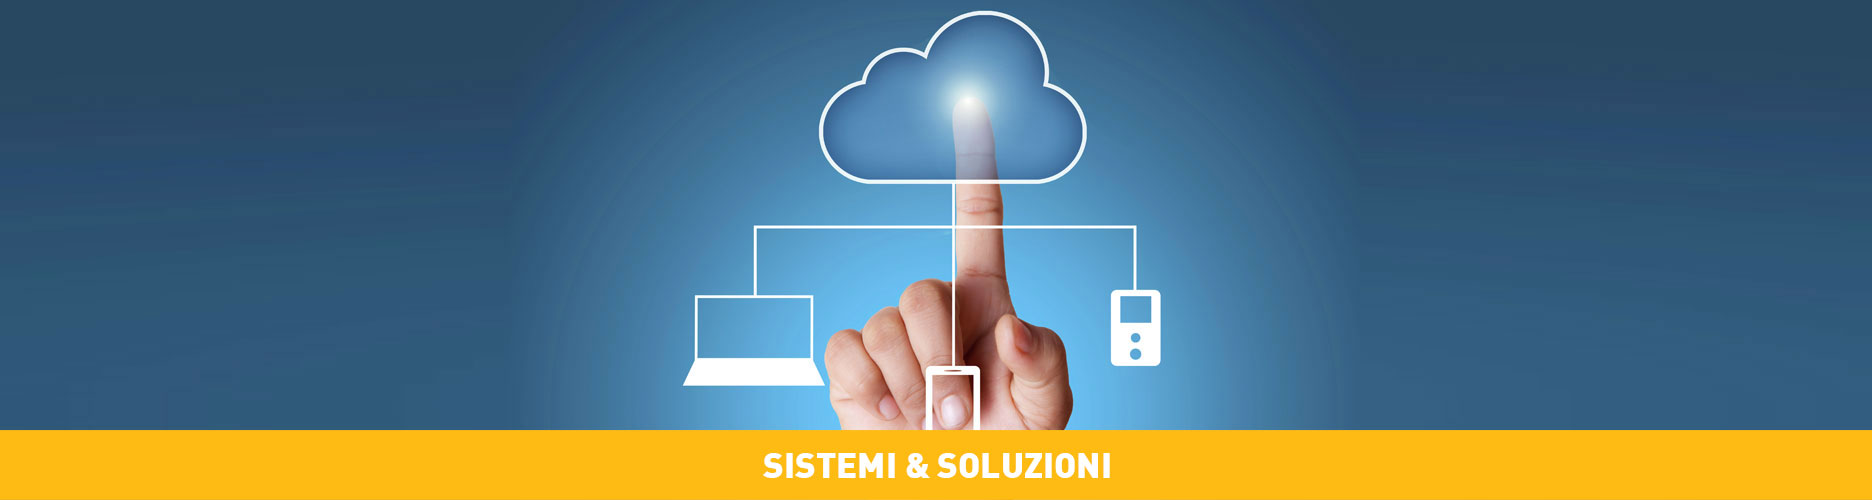 reti aziendali, housing, server farm, cloud privato